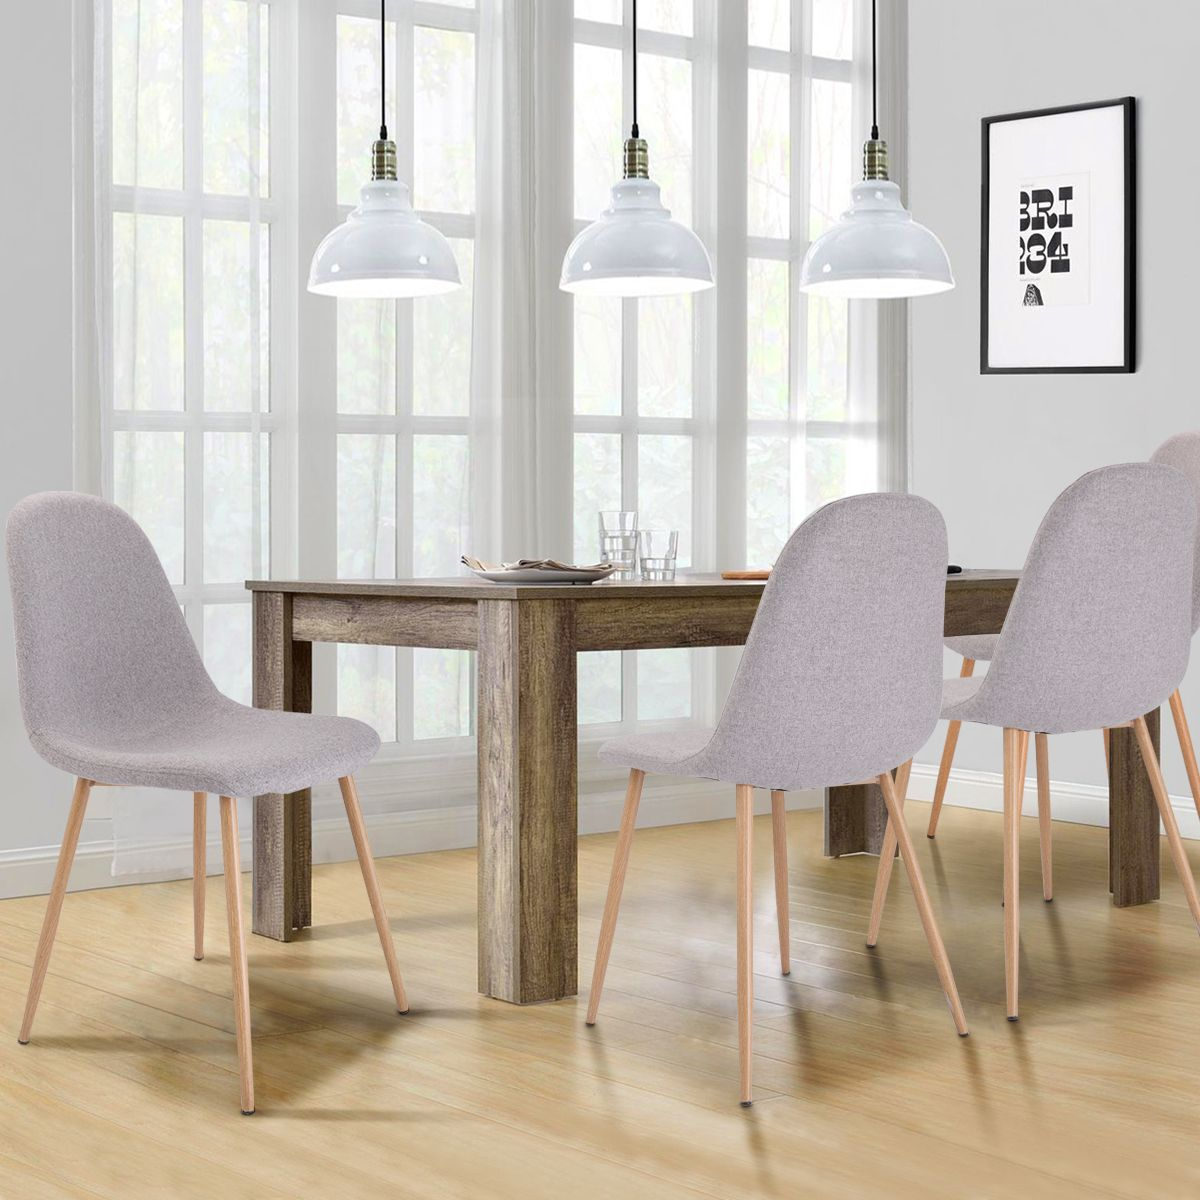 Costway Set Of 4 Modern Dining Accent Side Chairs Wood Legs Home